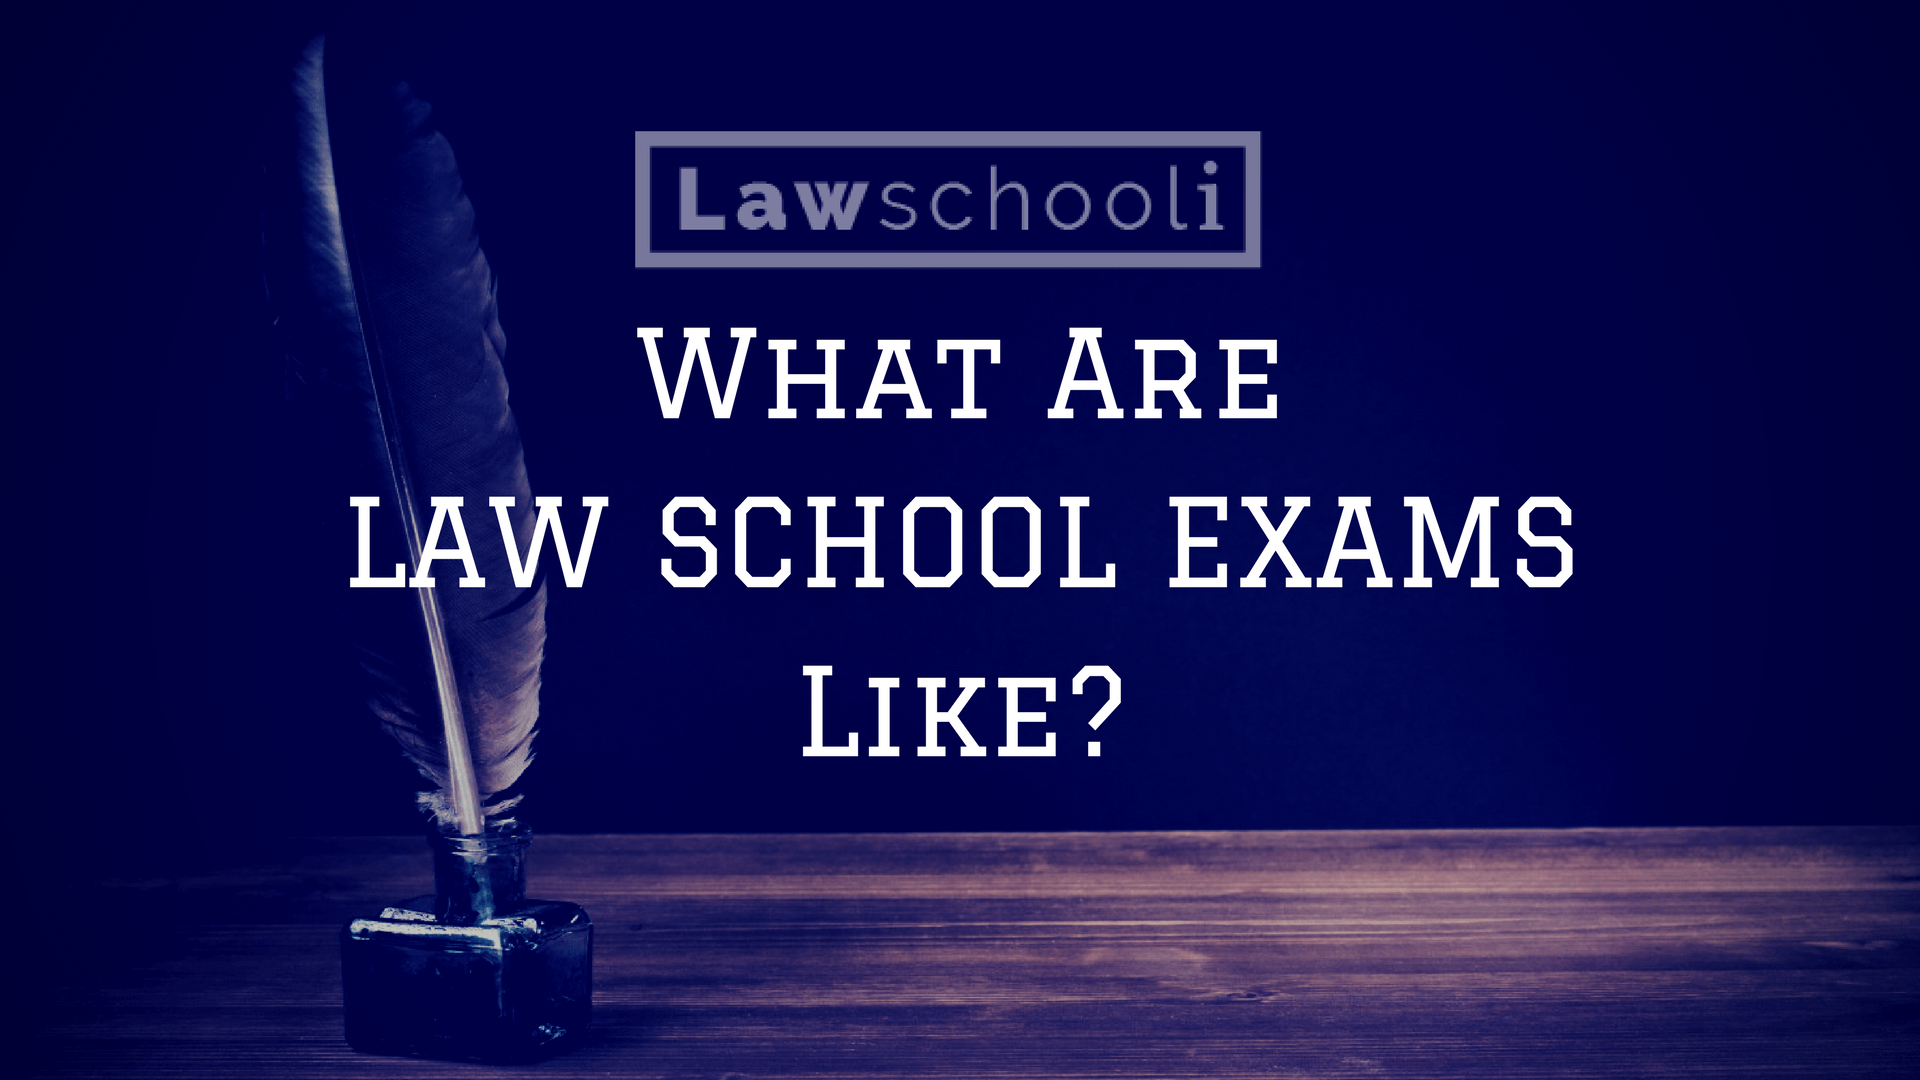 What Are Law School Exams Like Lawschooli